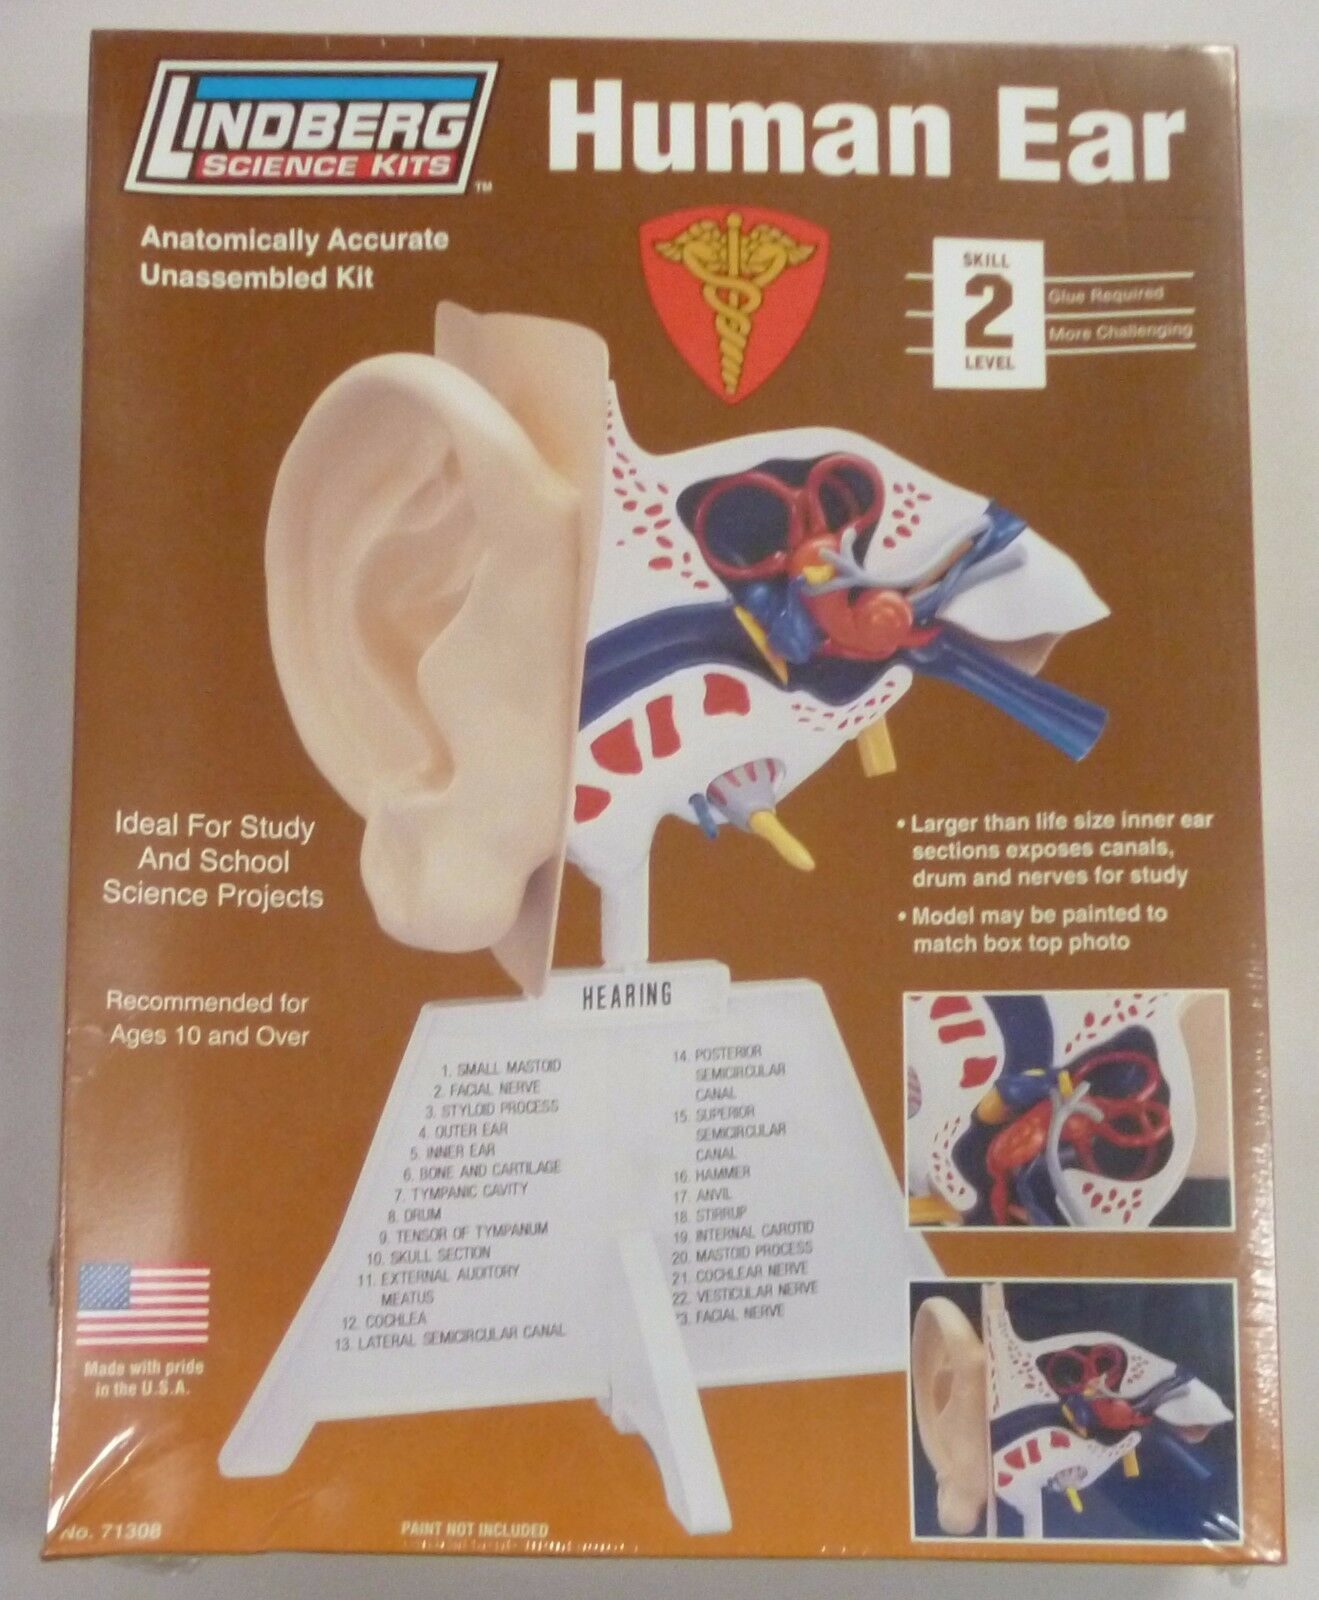 Lindberg 7 14 Inch Human Ear Anatomy Model Kit 1799 Picclick